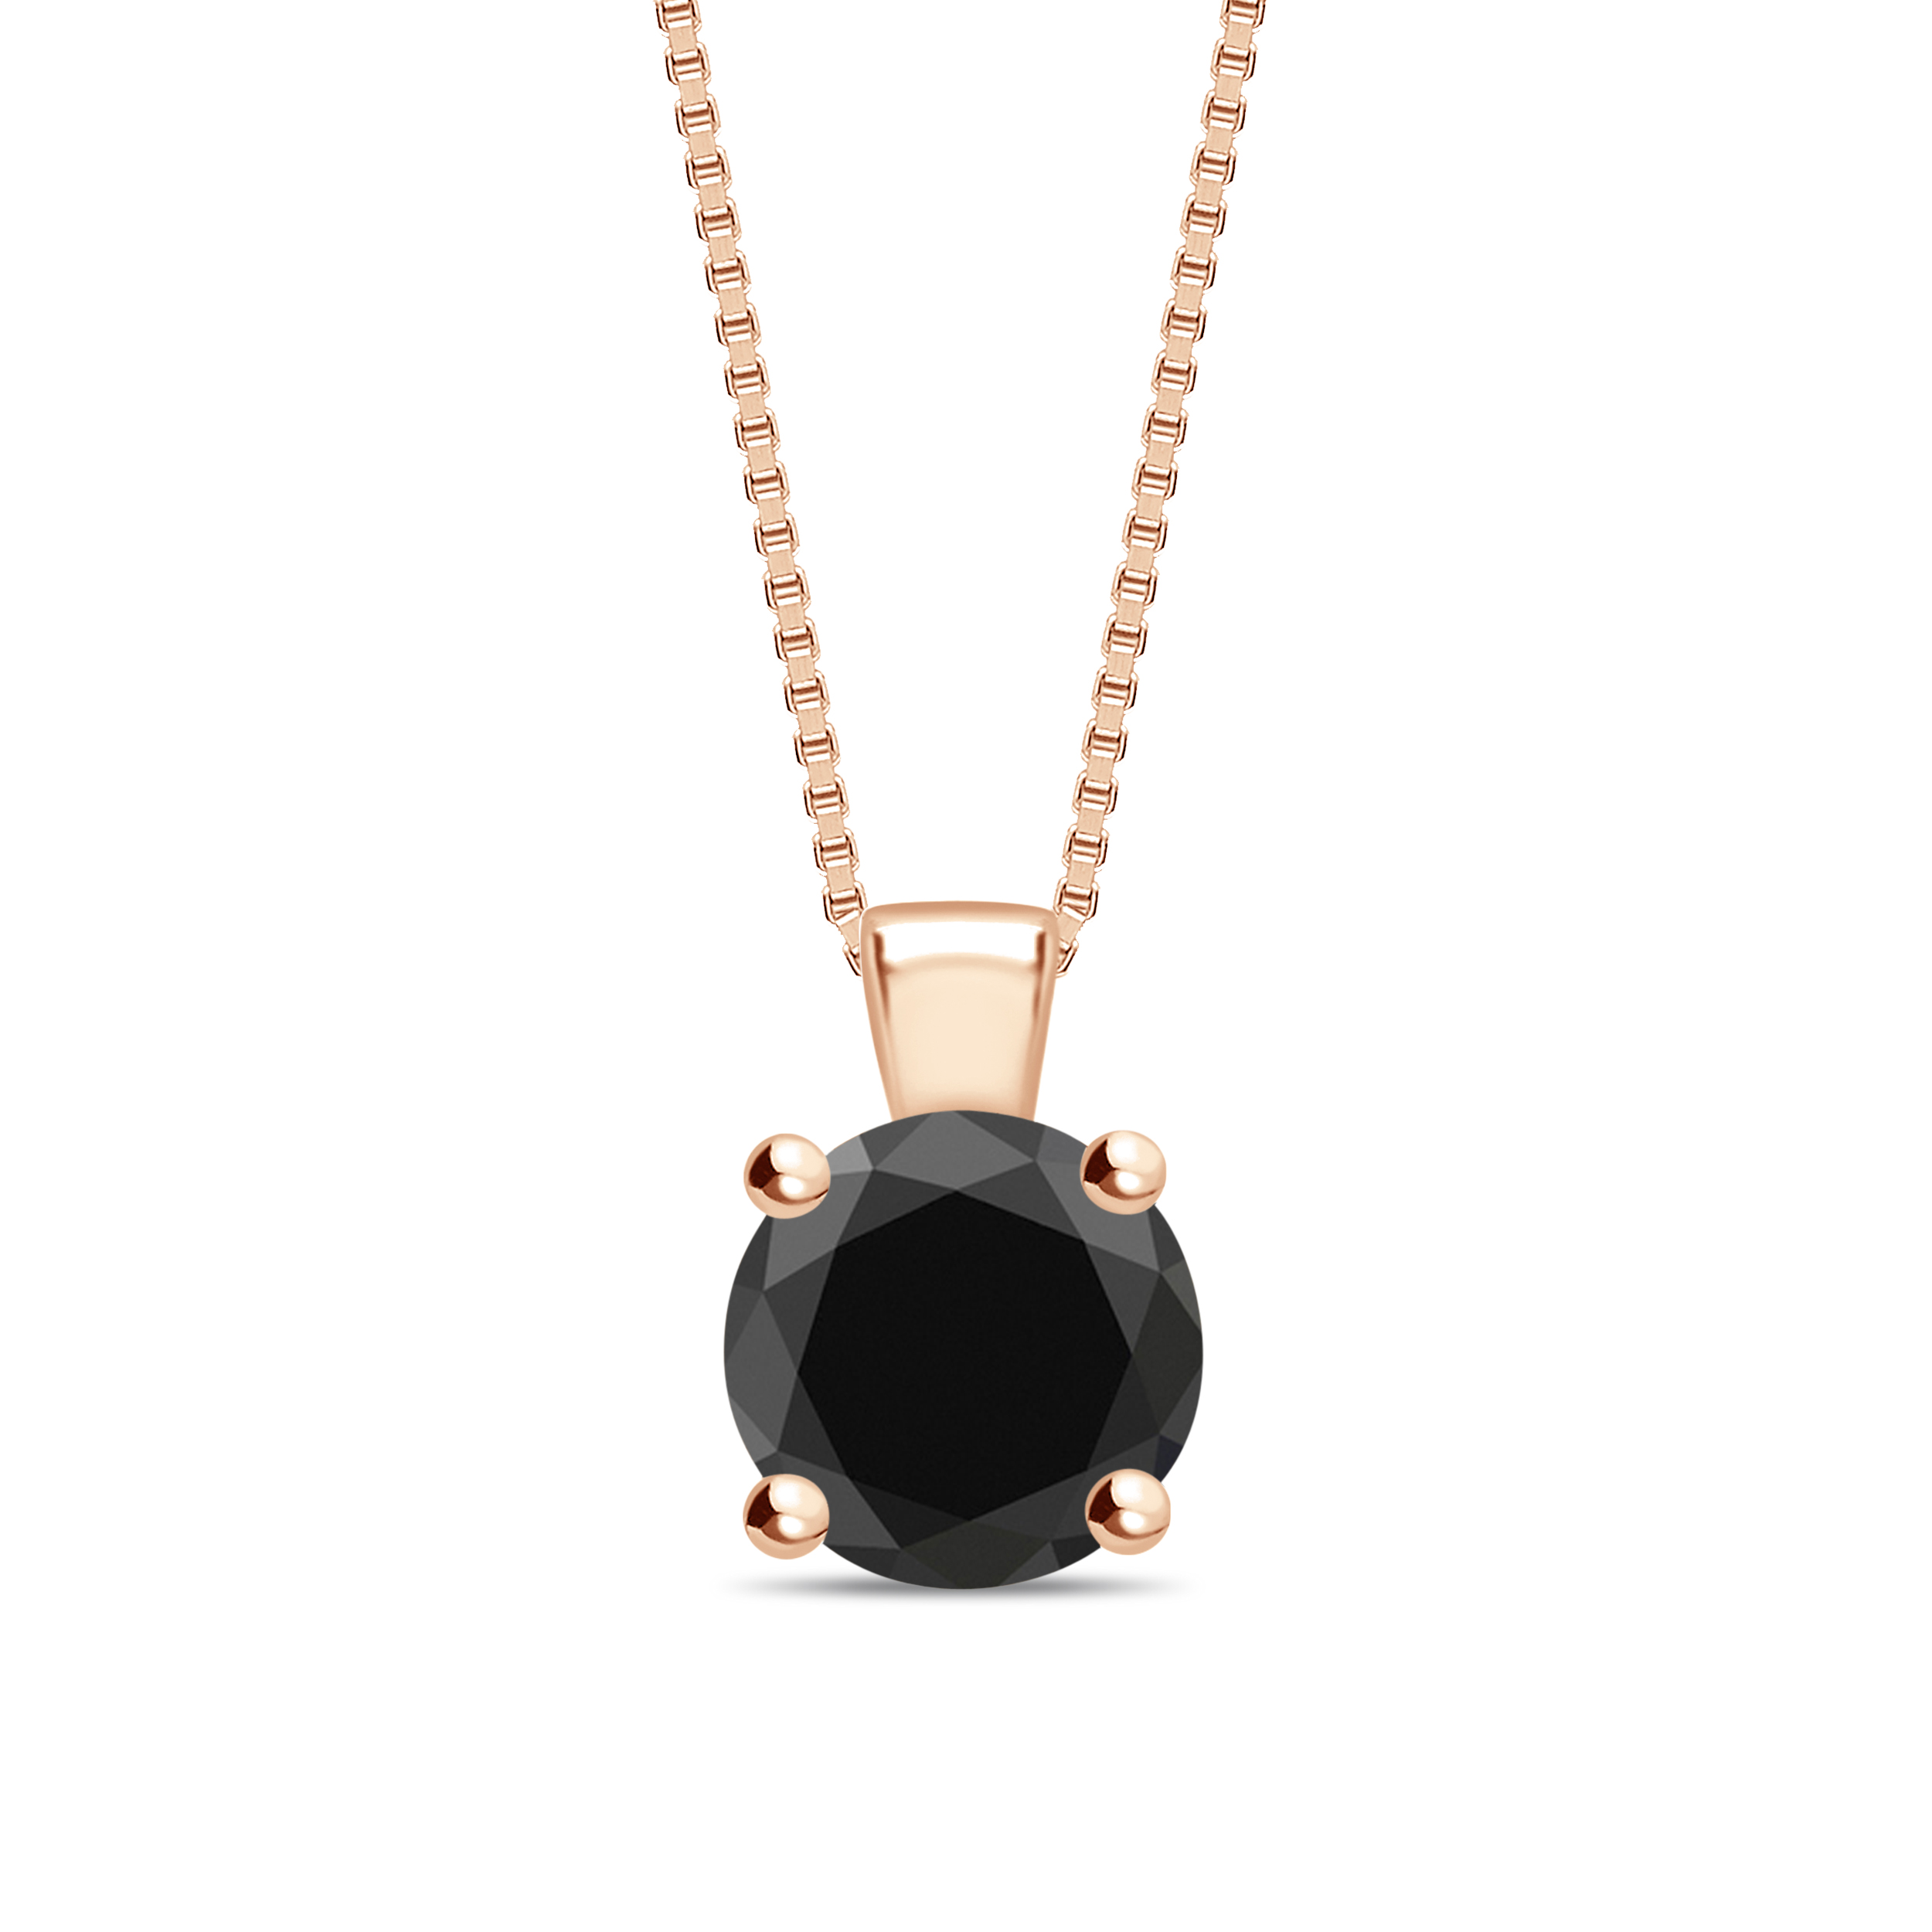 Round Cut Black Diamond Solitaire Pendants Necklace in Classic Solitaire